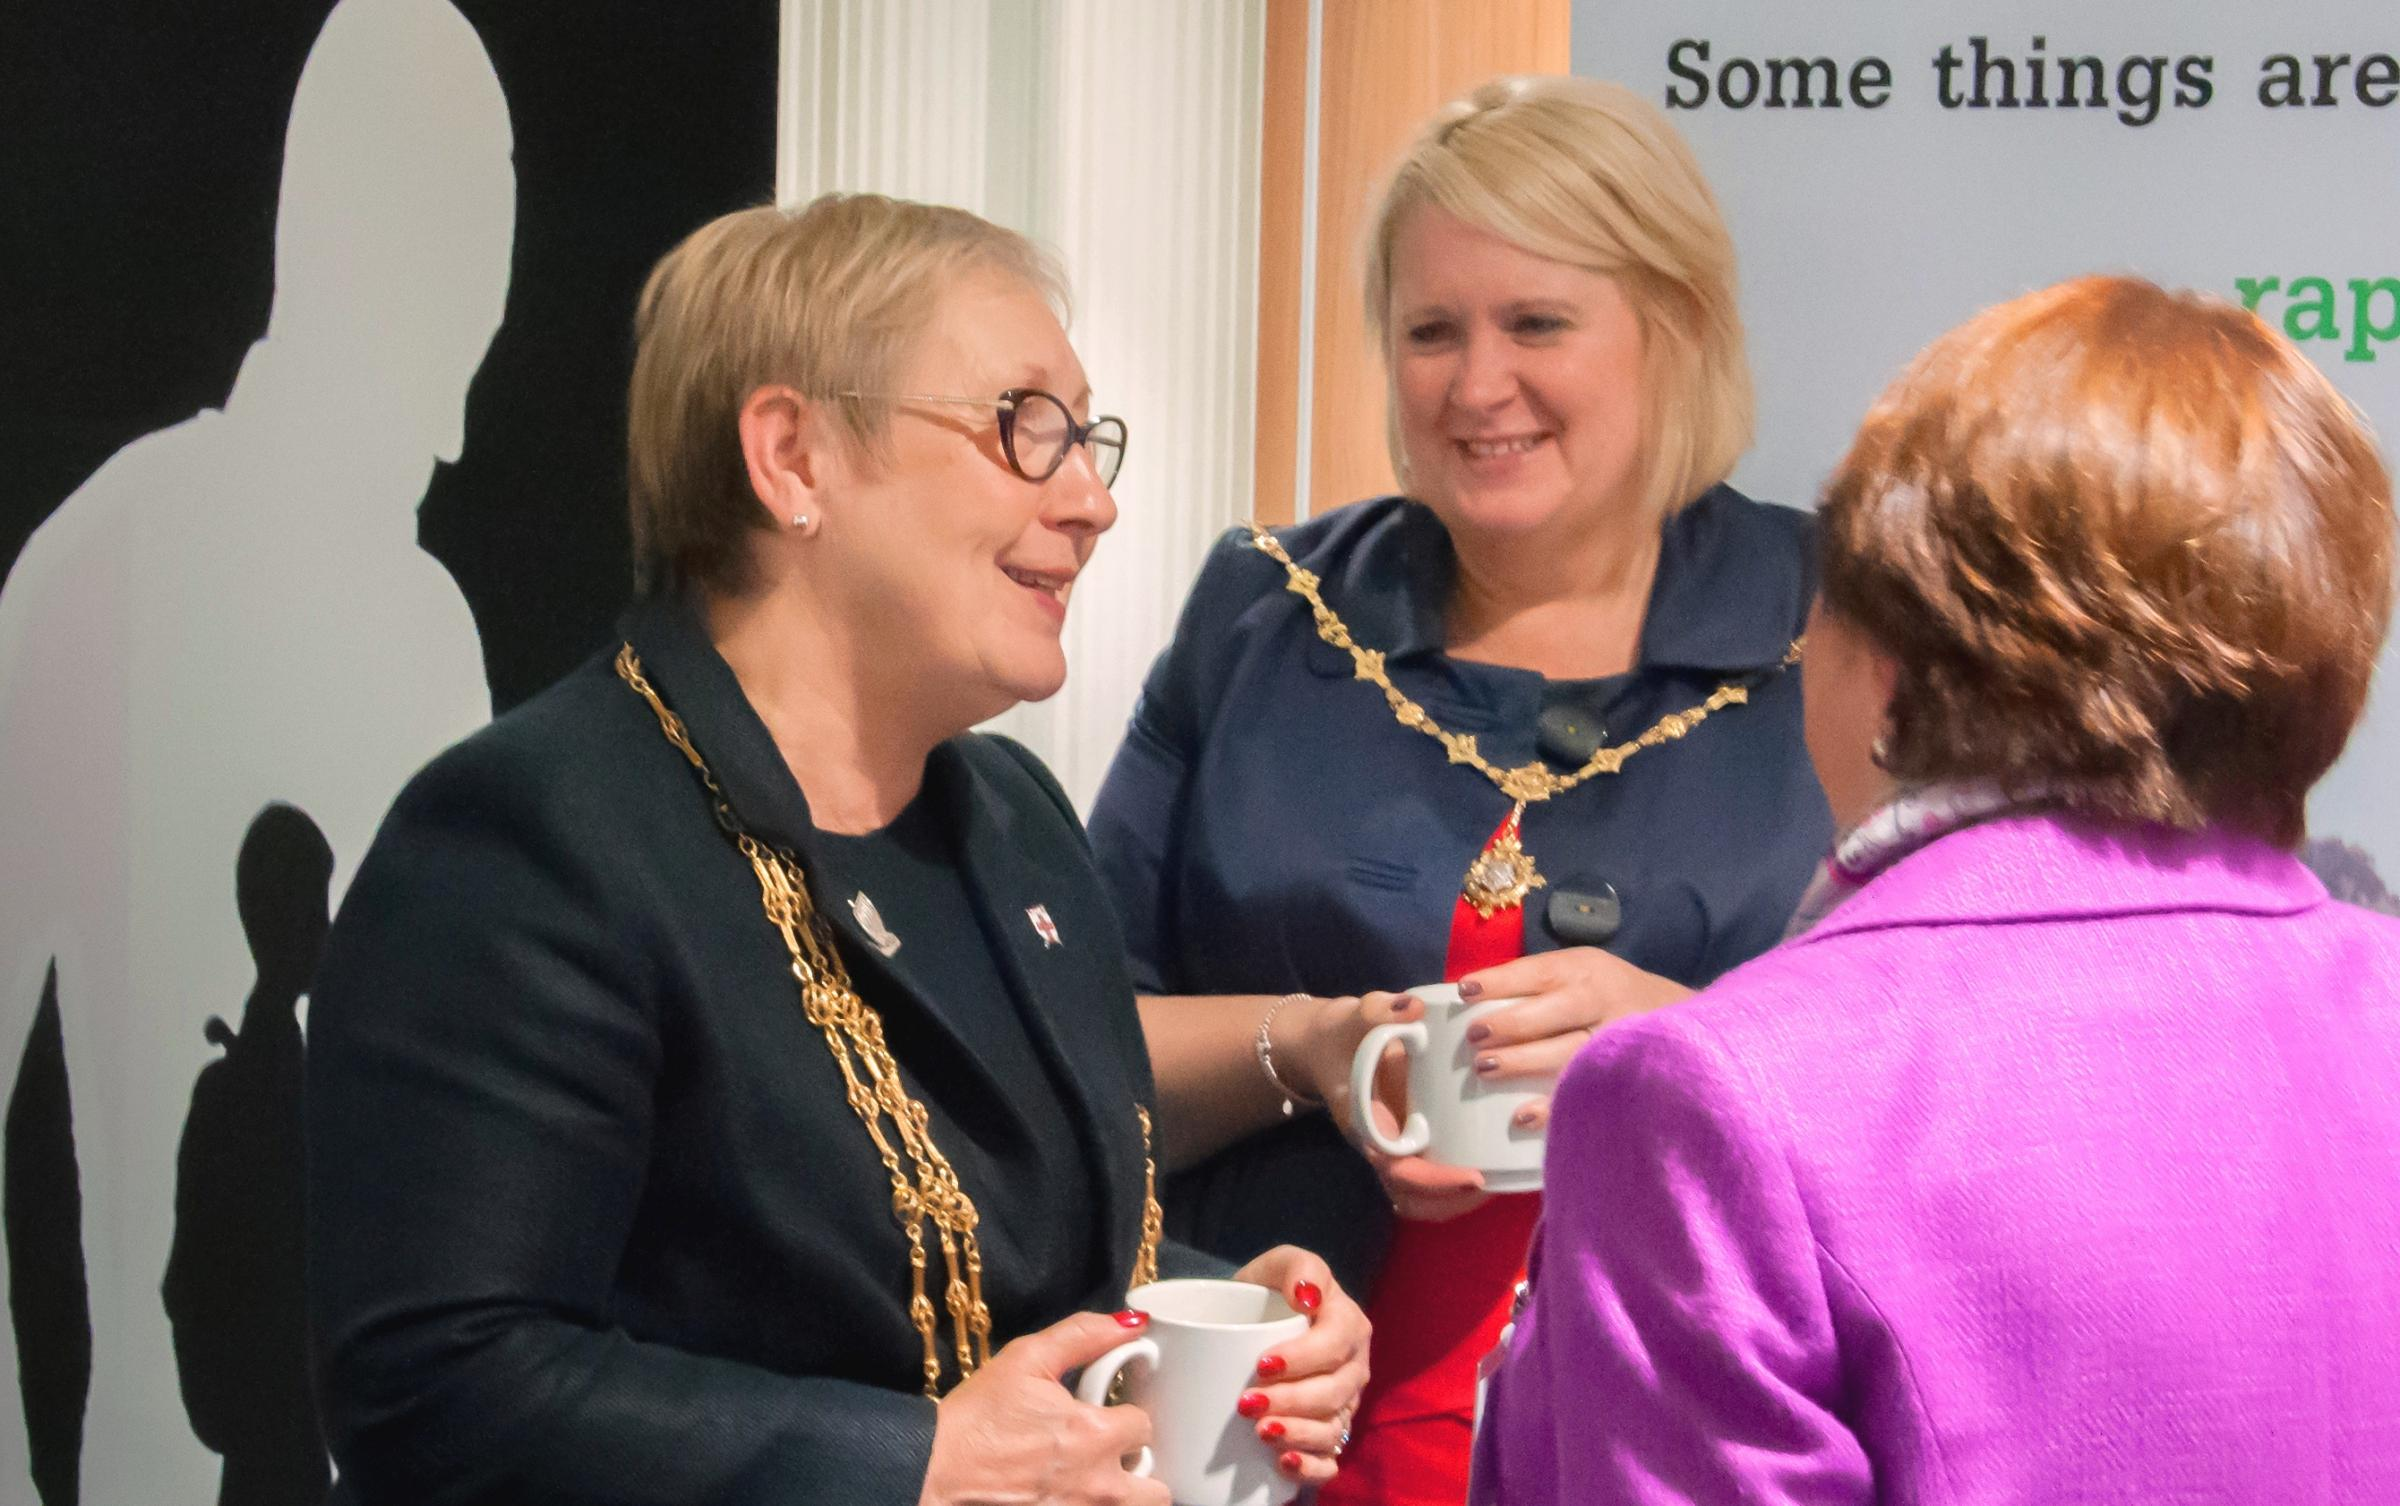 The Lord Mayor of York, Cllr Sonja Crisp, left, talks with Survive supporters